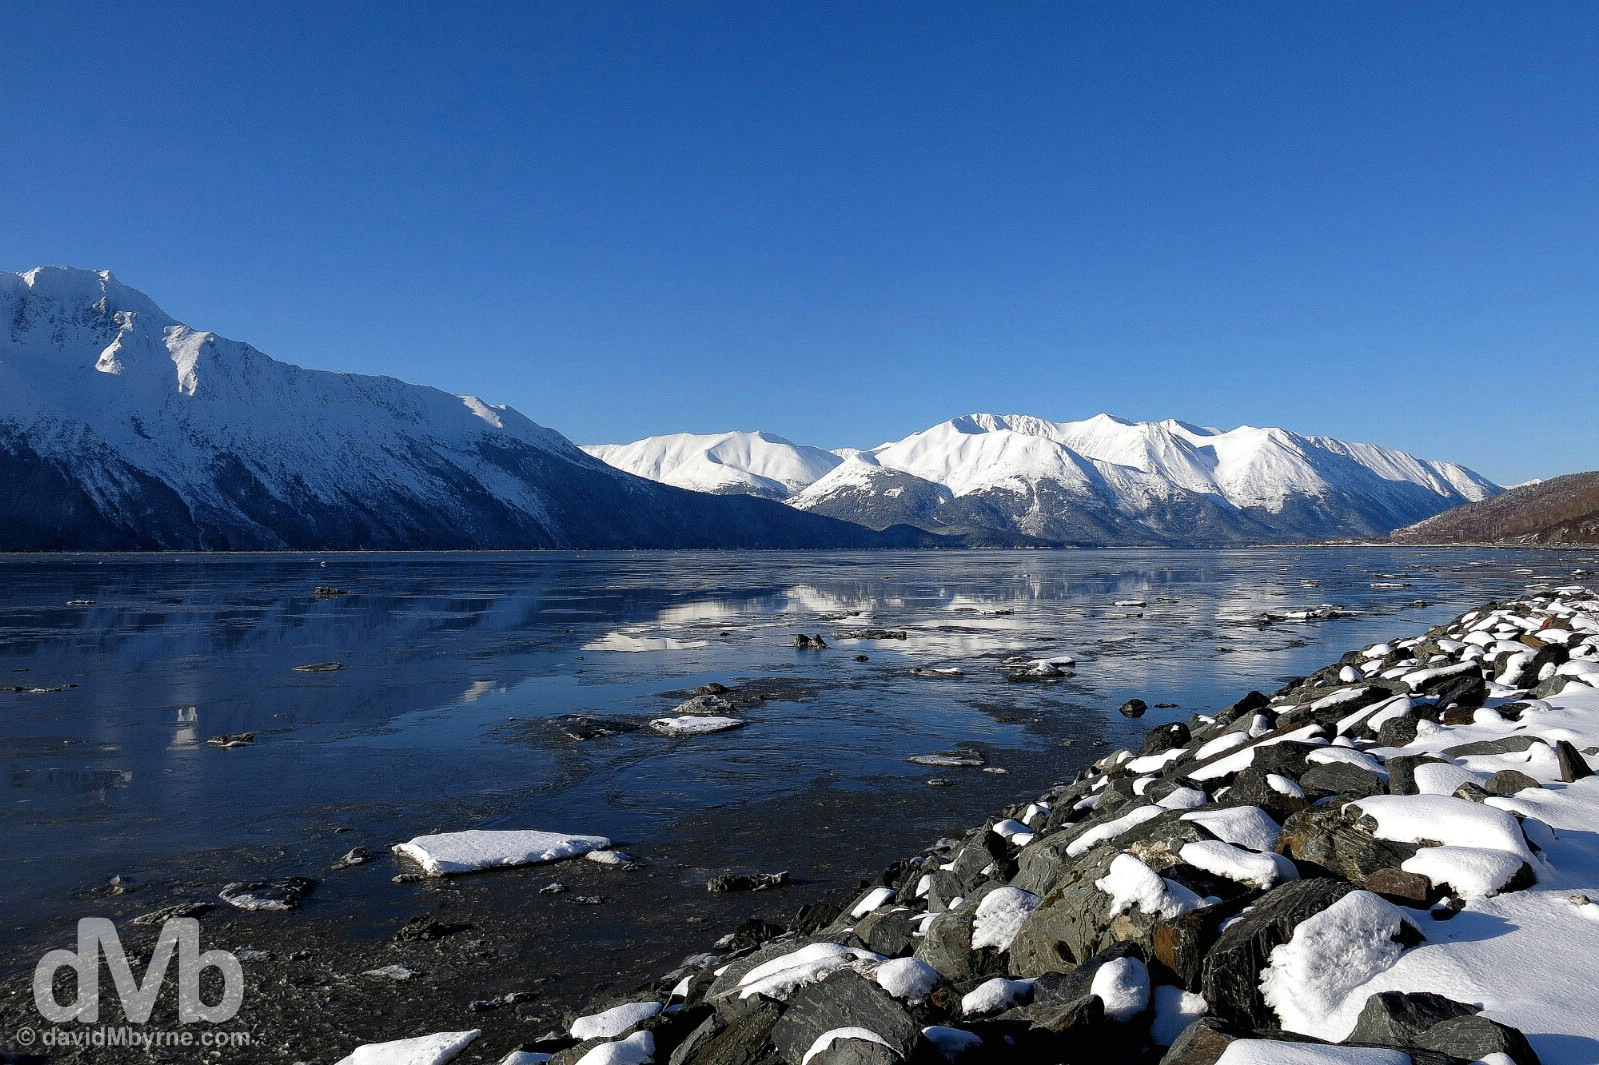 Early morning at Turnagain Arm of Cook Inlet off the Seward Highway, Alaska, USA. March 12, 2013.